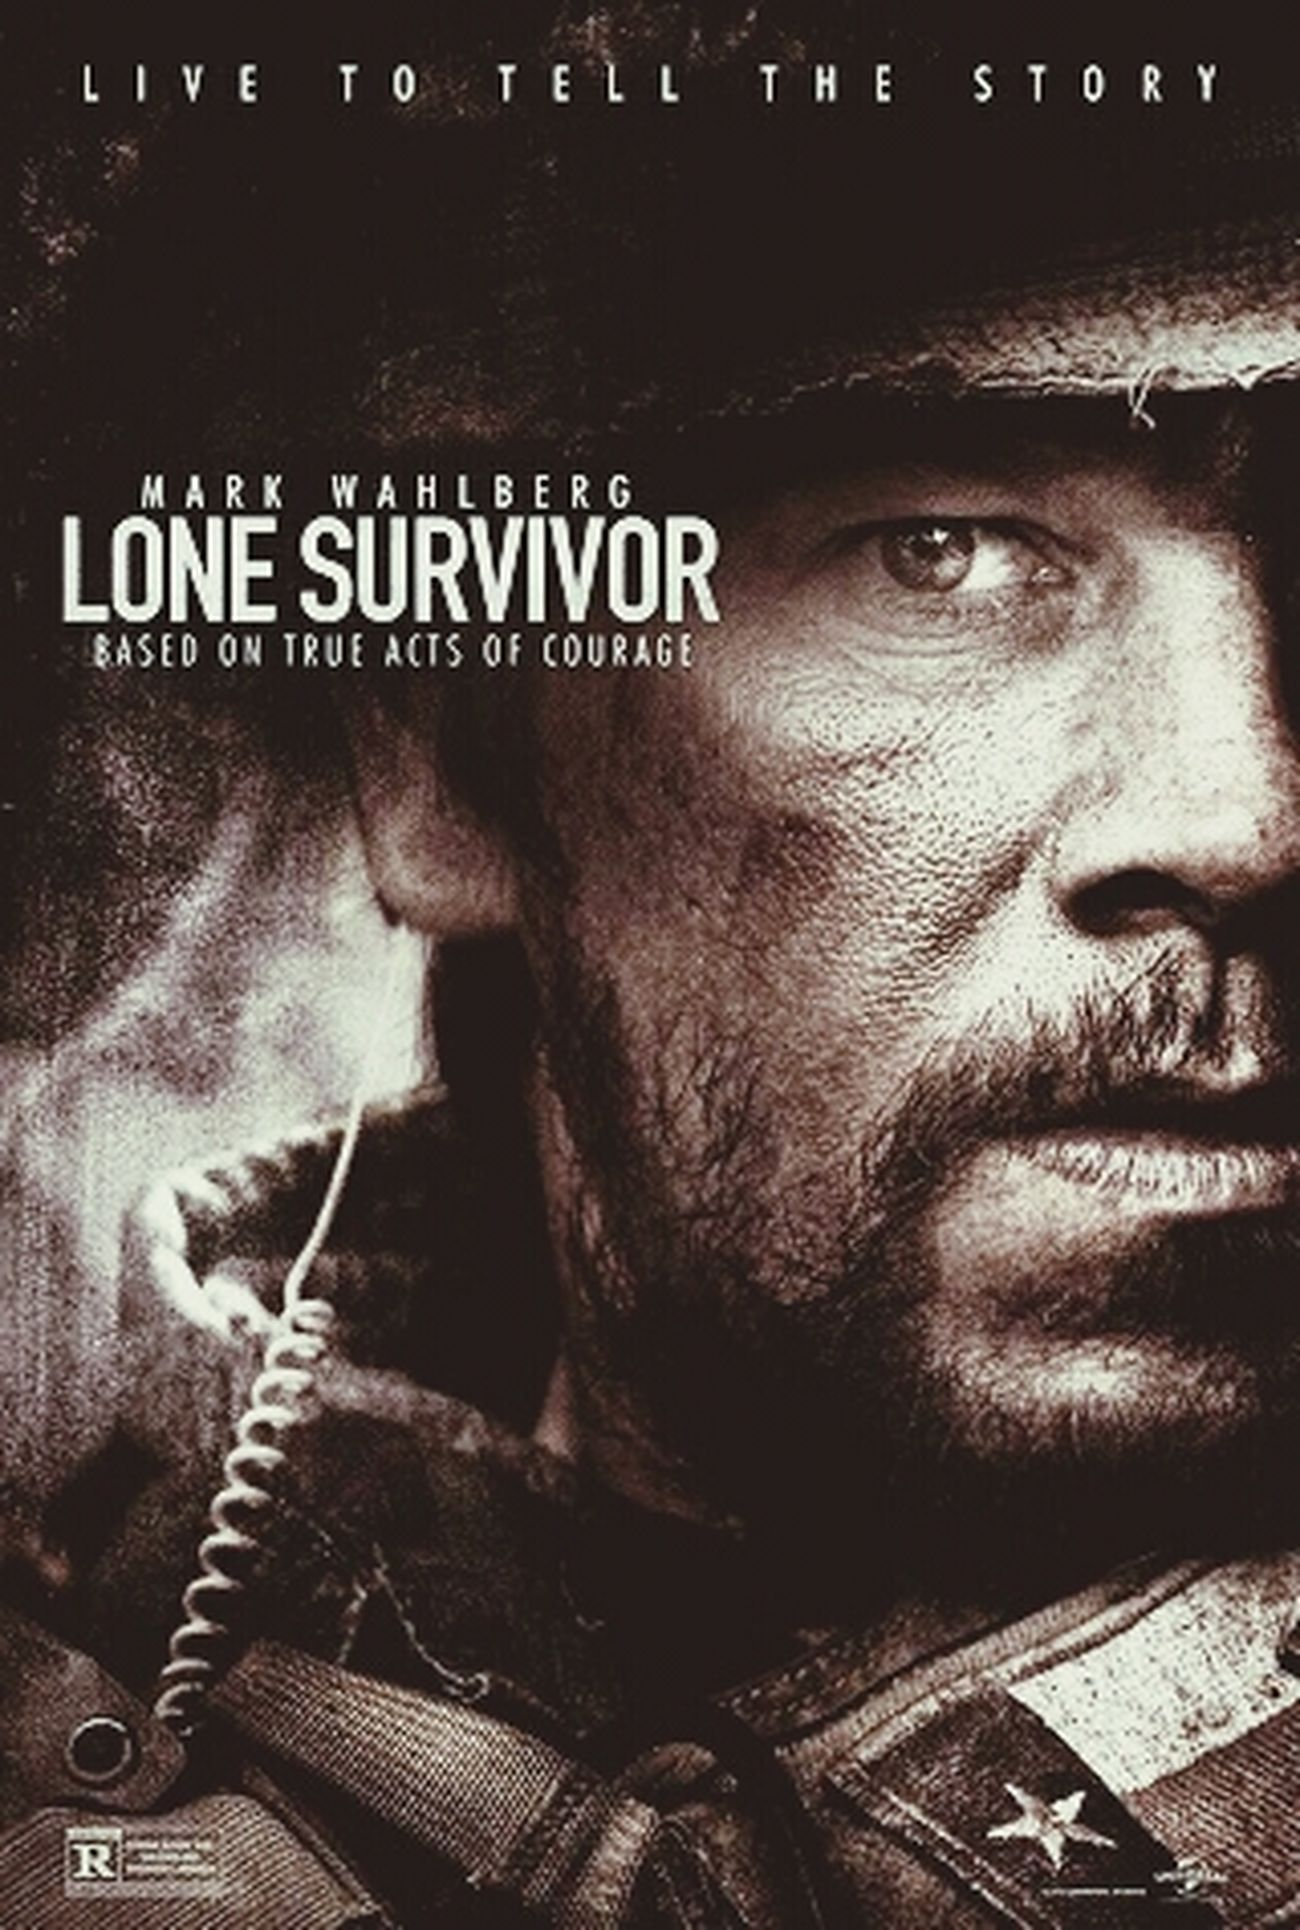 Just got back from watching it. Such an great movie with a deep impact and insight!! love it :-) Lonesurvivor Bestmovie